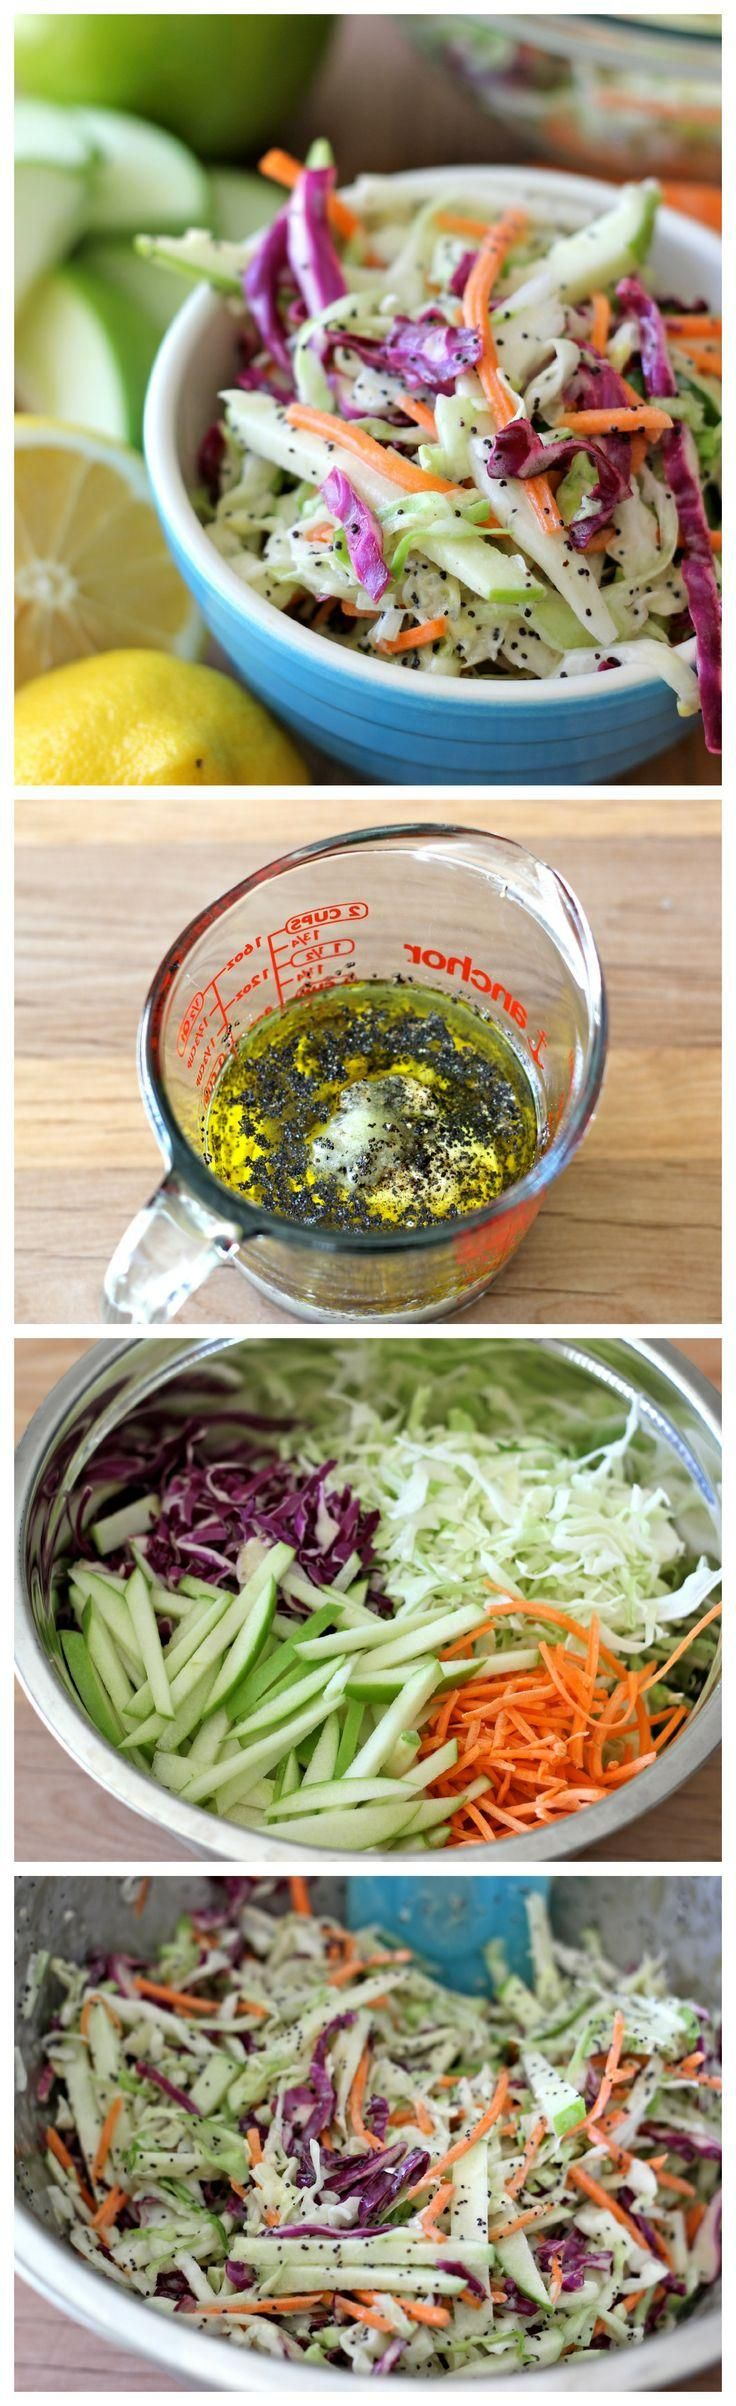 Apple and Poppy Seed Coleslaw, can be vegan by removing the mayo  using vegenaise or cashew butter.